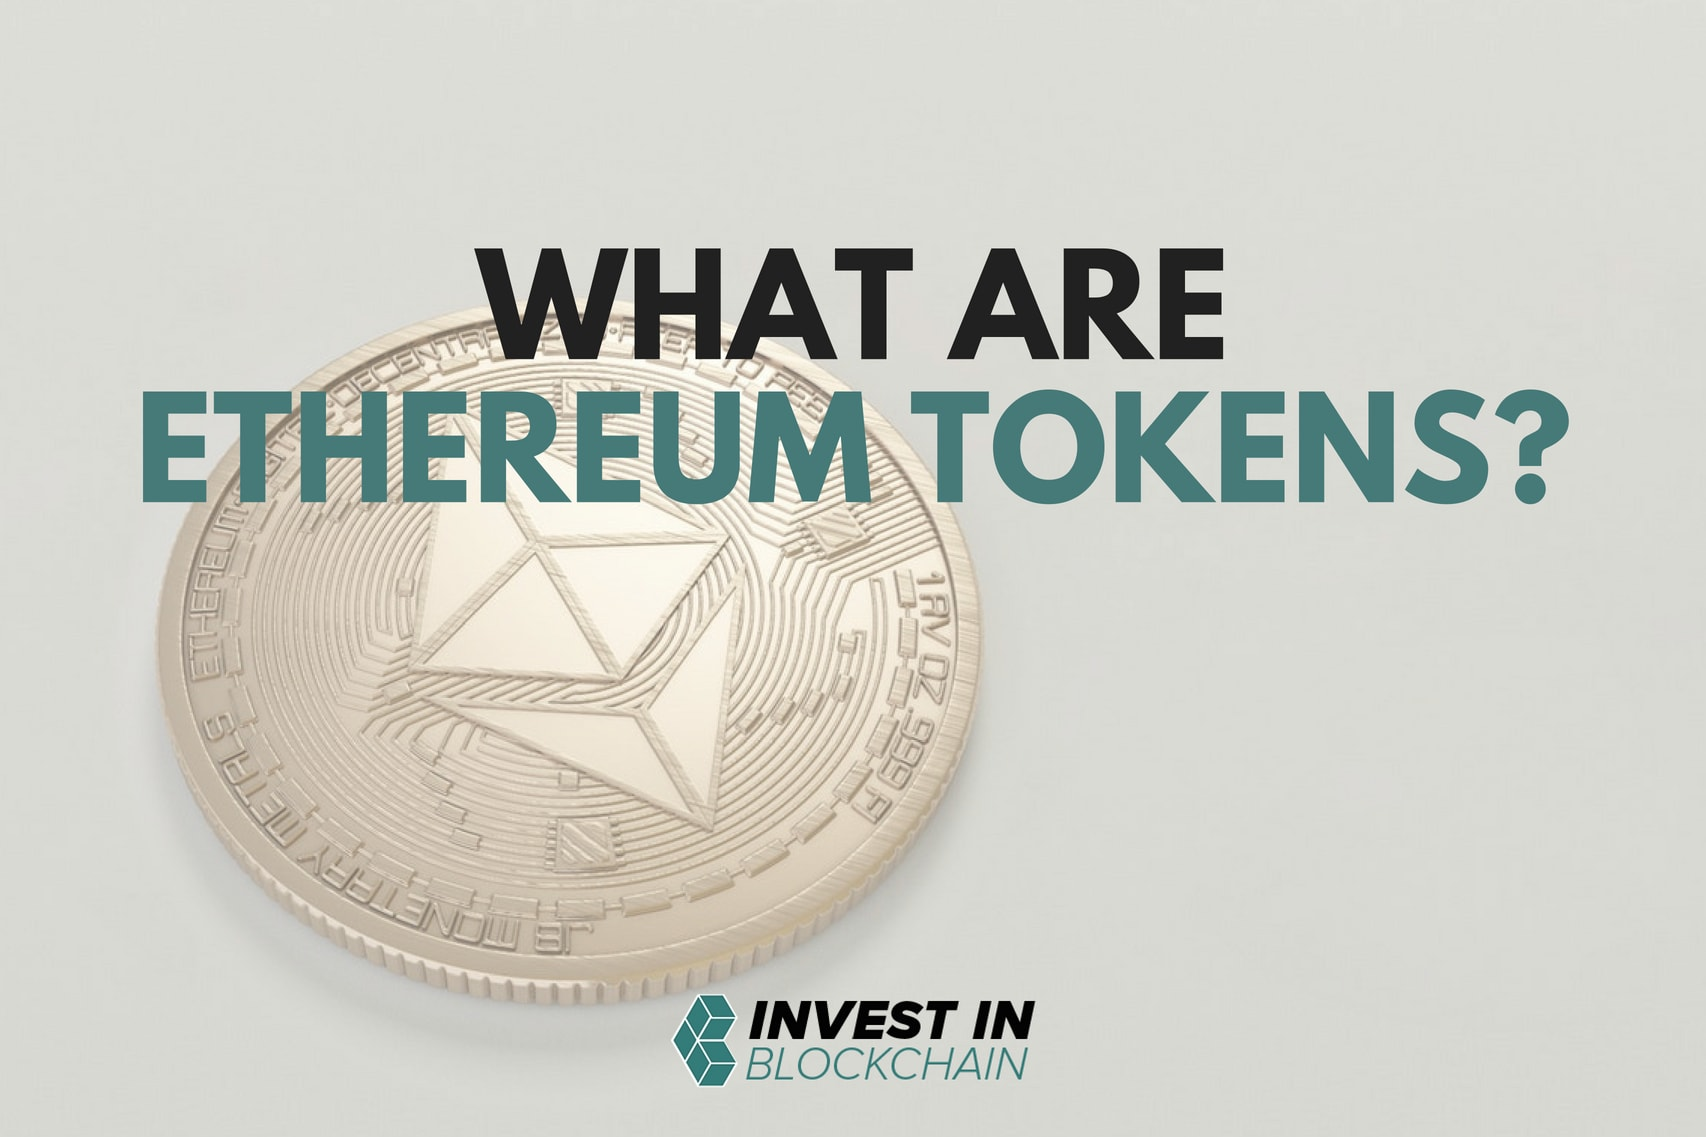 What are Ethereum Tokens?